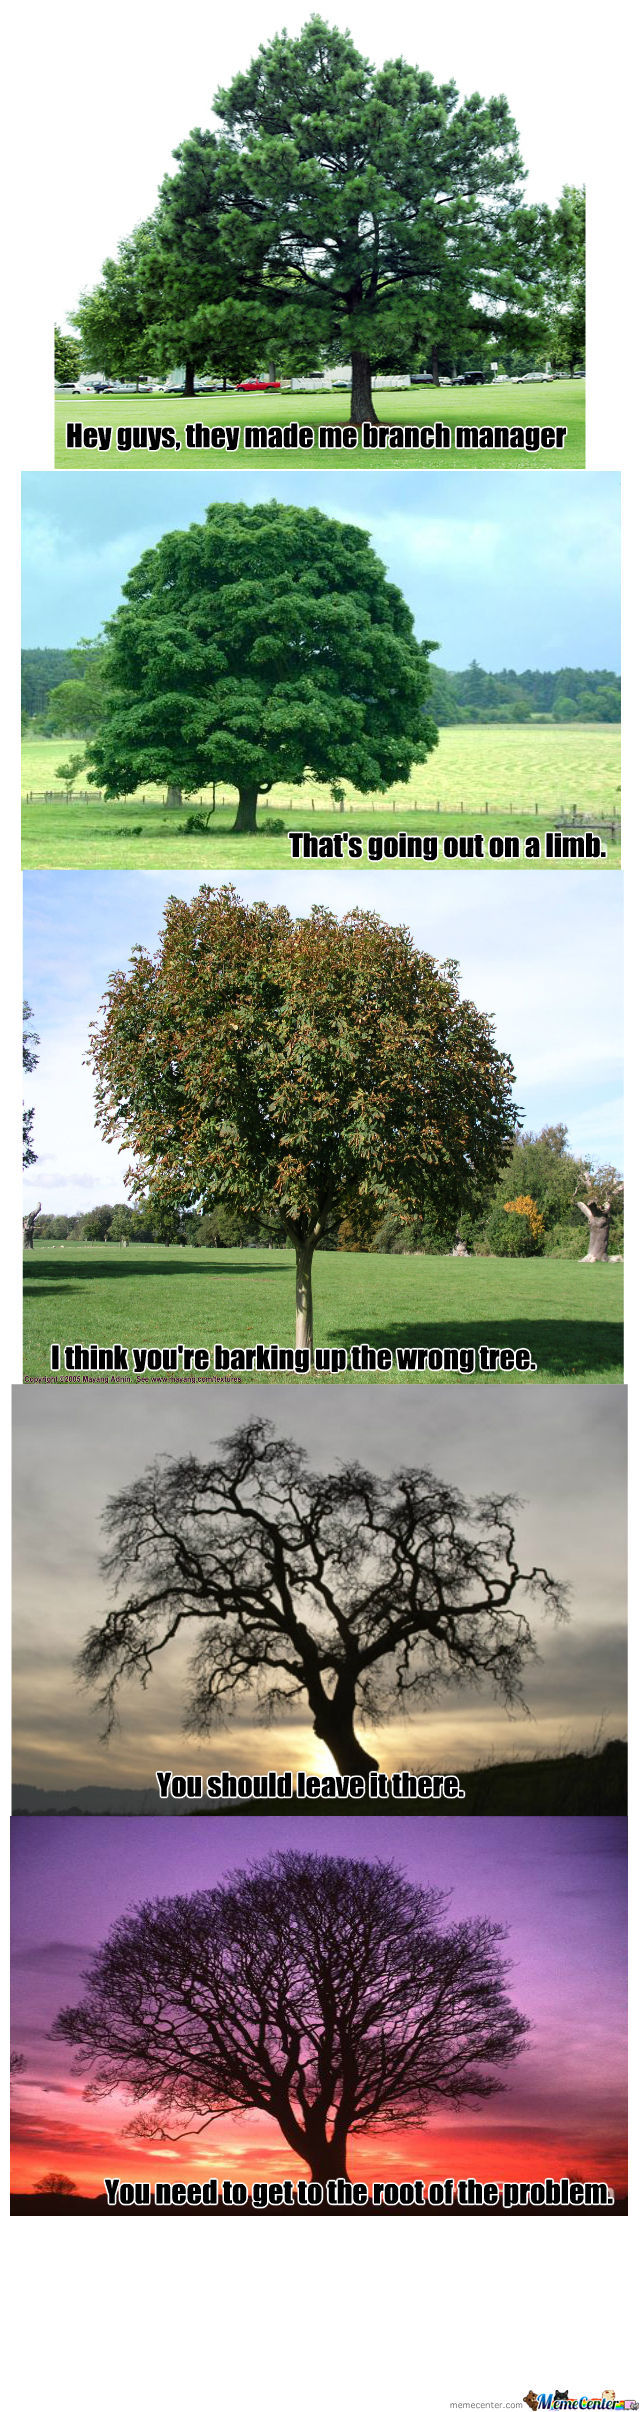 'tree't Us All Alike.